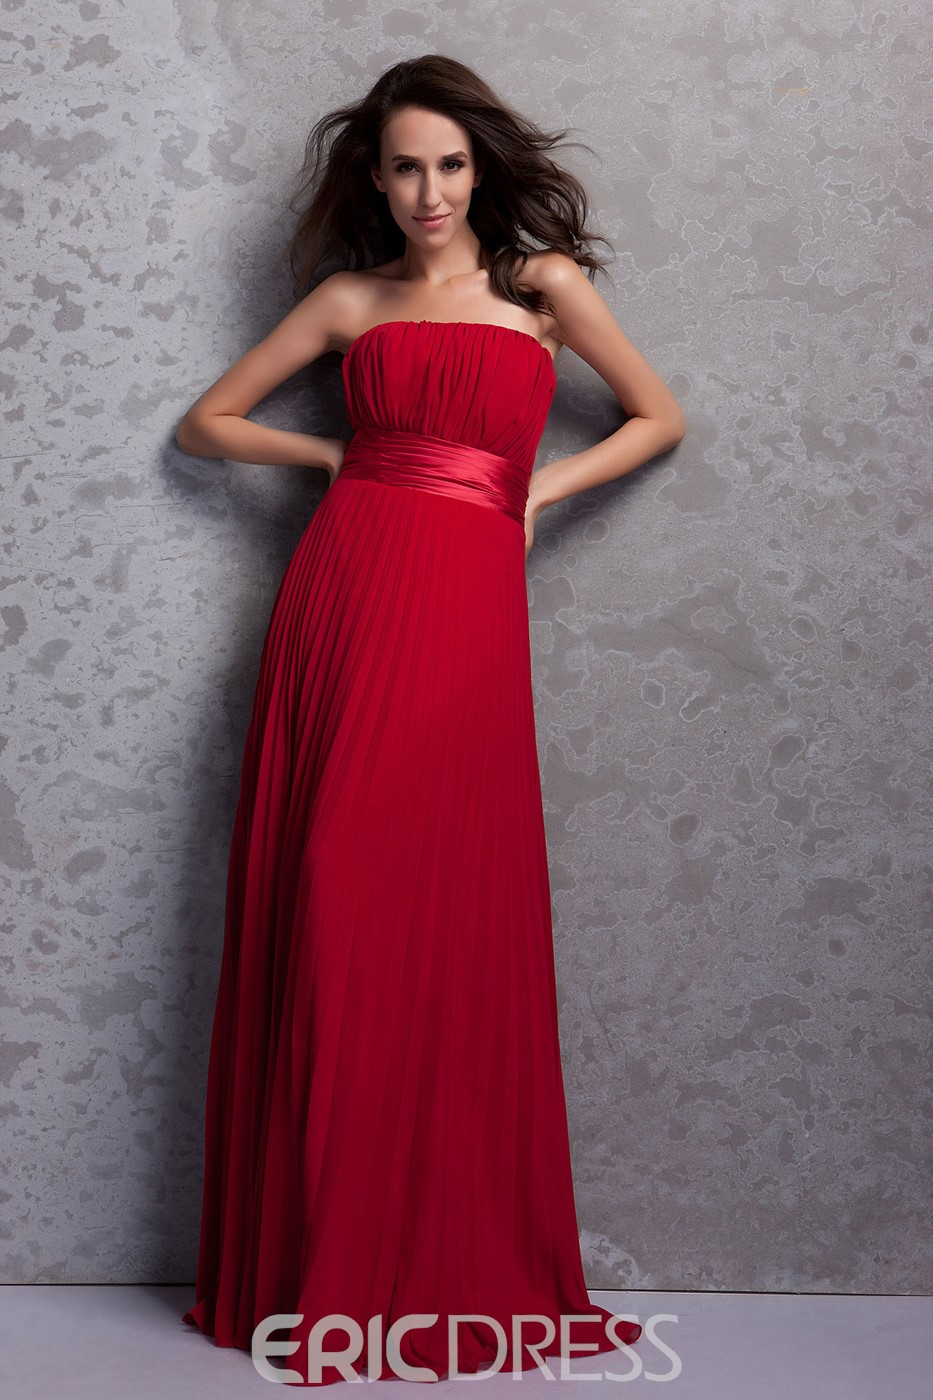 Ruched A-Line Strapless Floor-Length Renata's Bridesmaid Dress